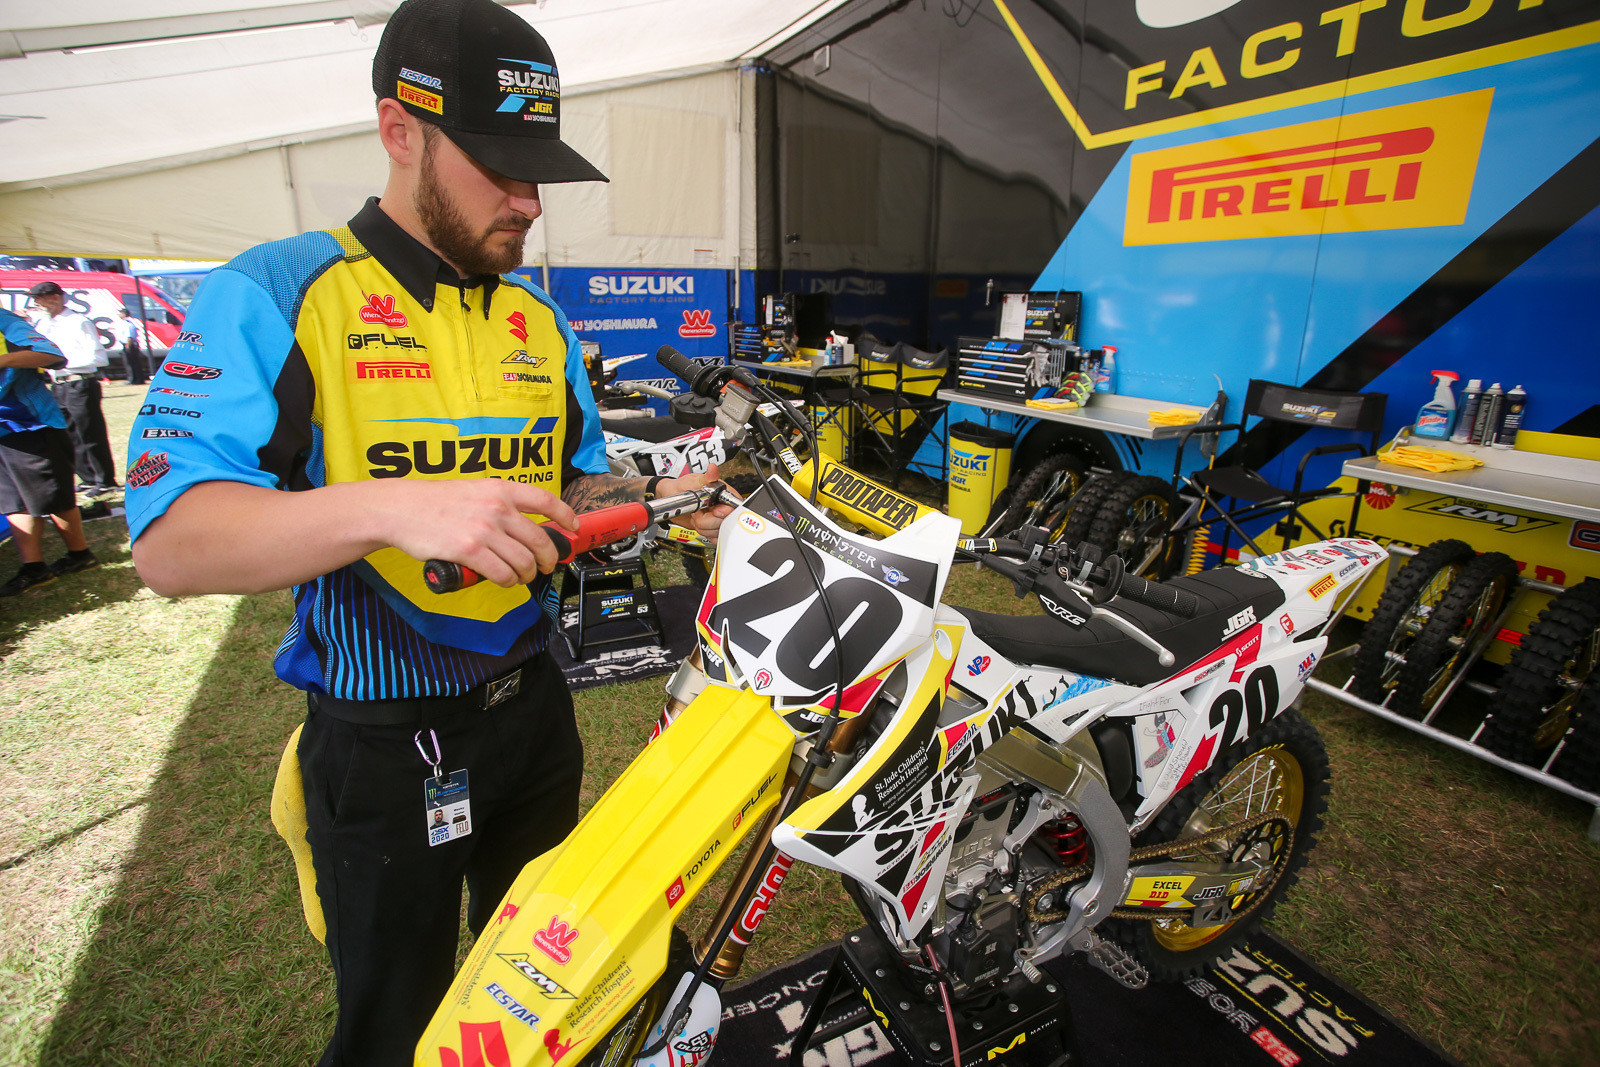 Wes Hunter got the nod to wrench for Broc Tickle in his return to action after serving his WADA penalty.